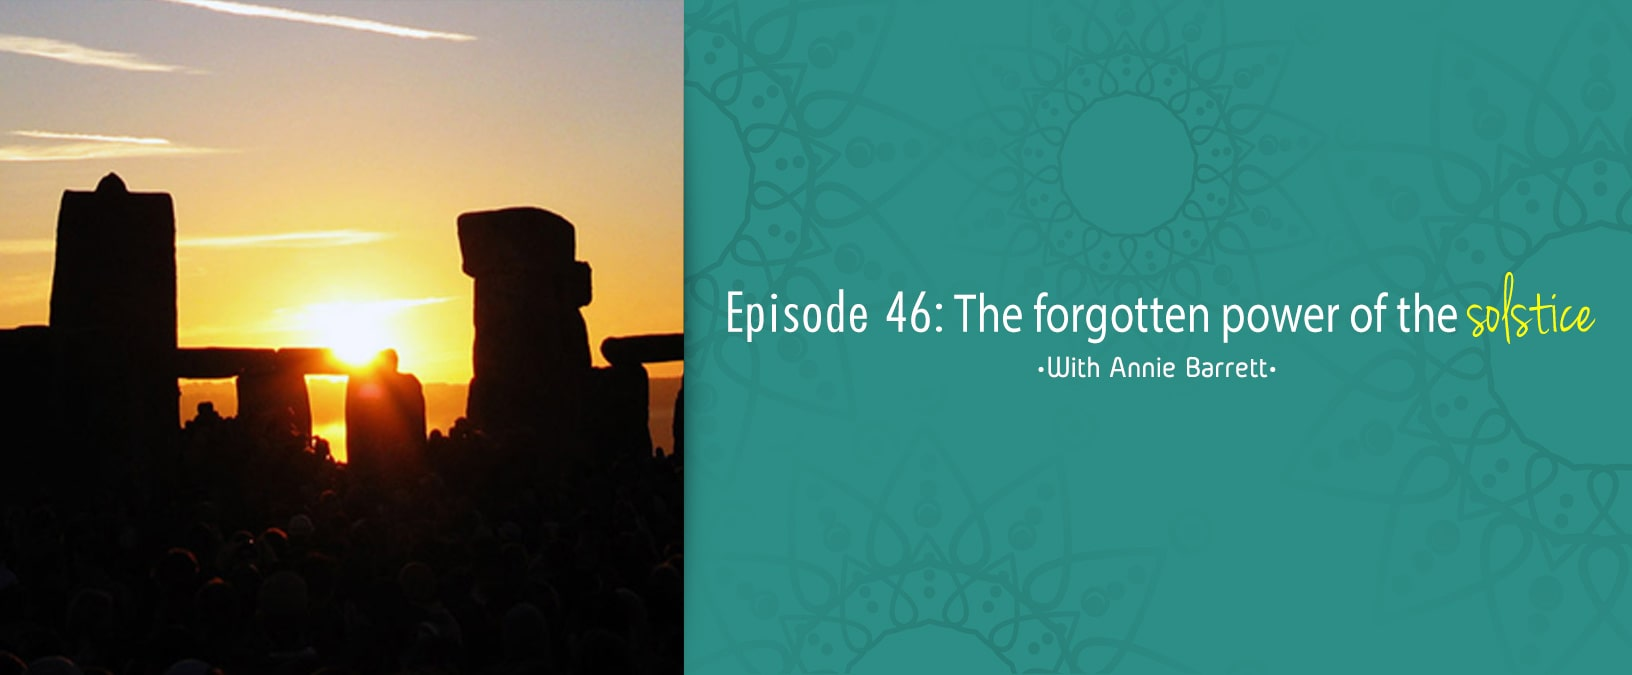 The forgotten power of the solstice